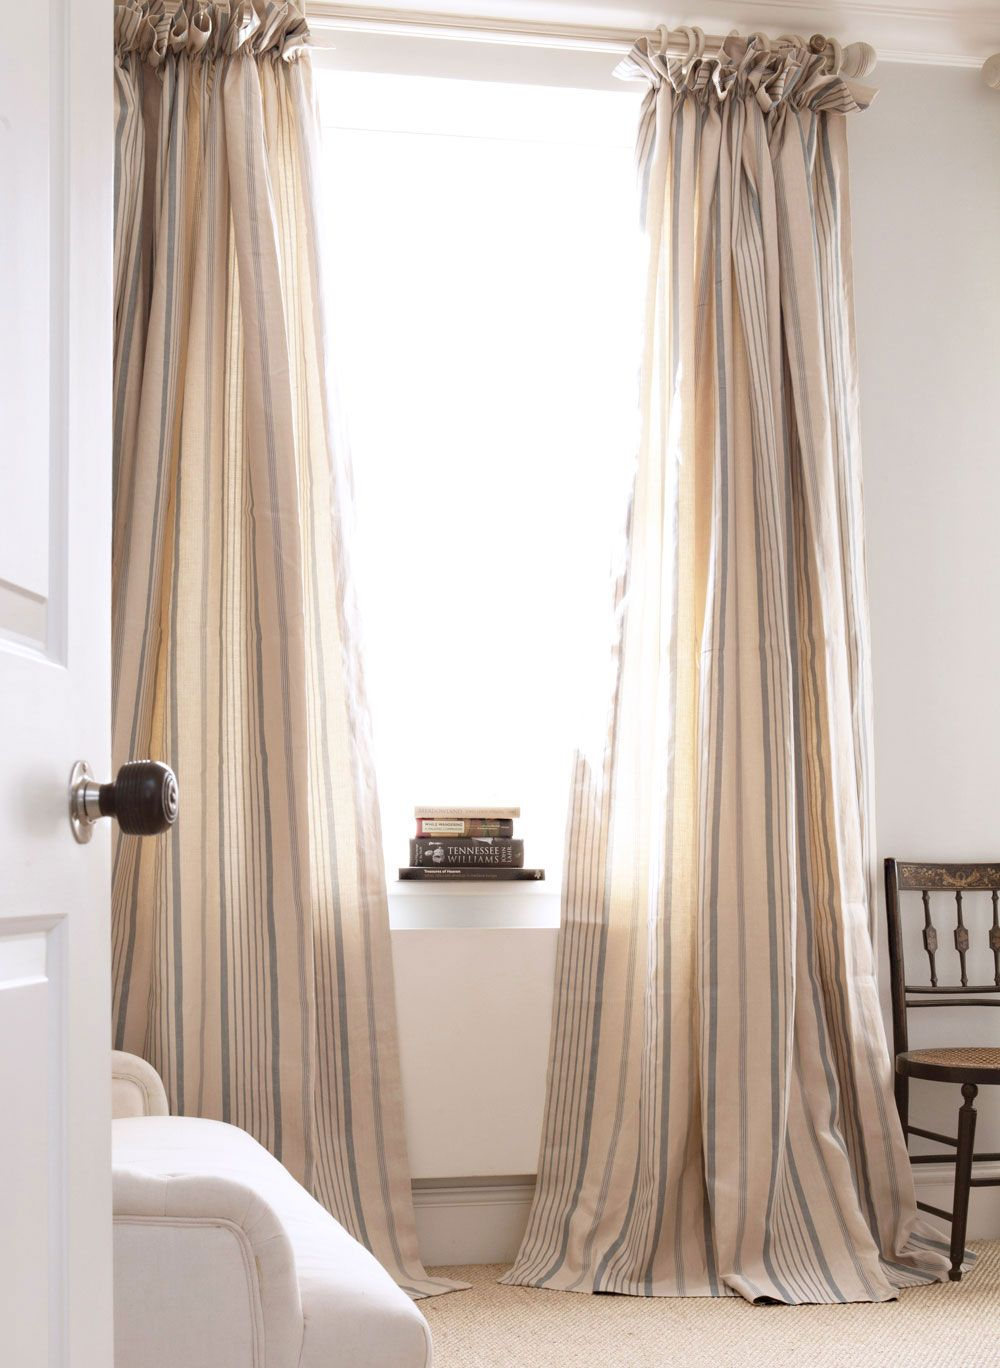 Blue Ticking Curtains Kate Forman Design Window Treatments Pinterest Get The Look